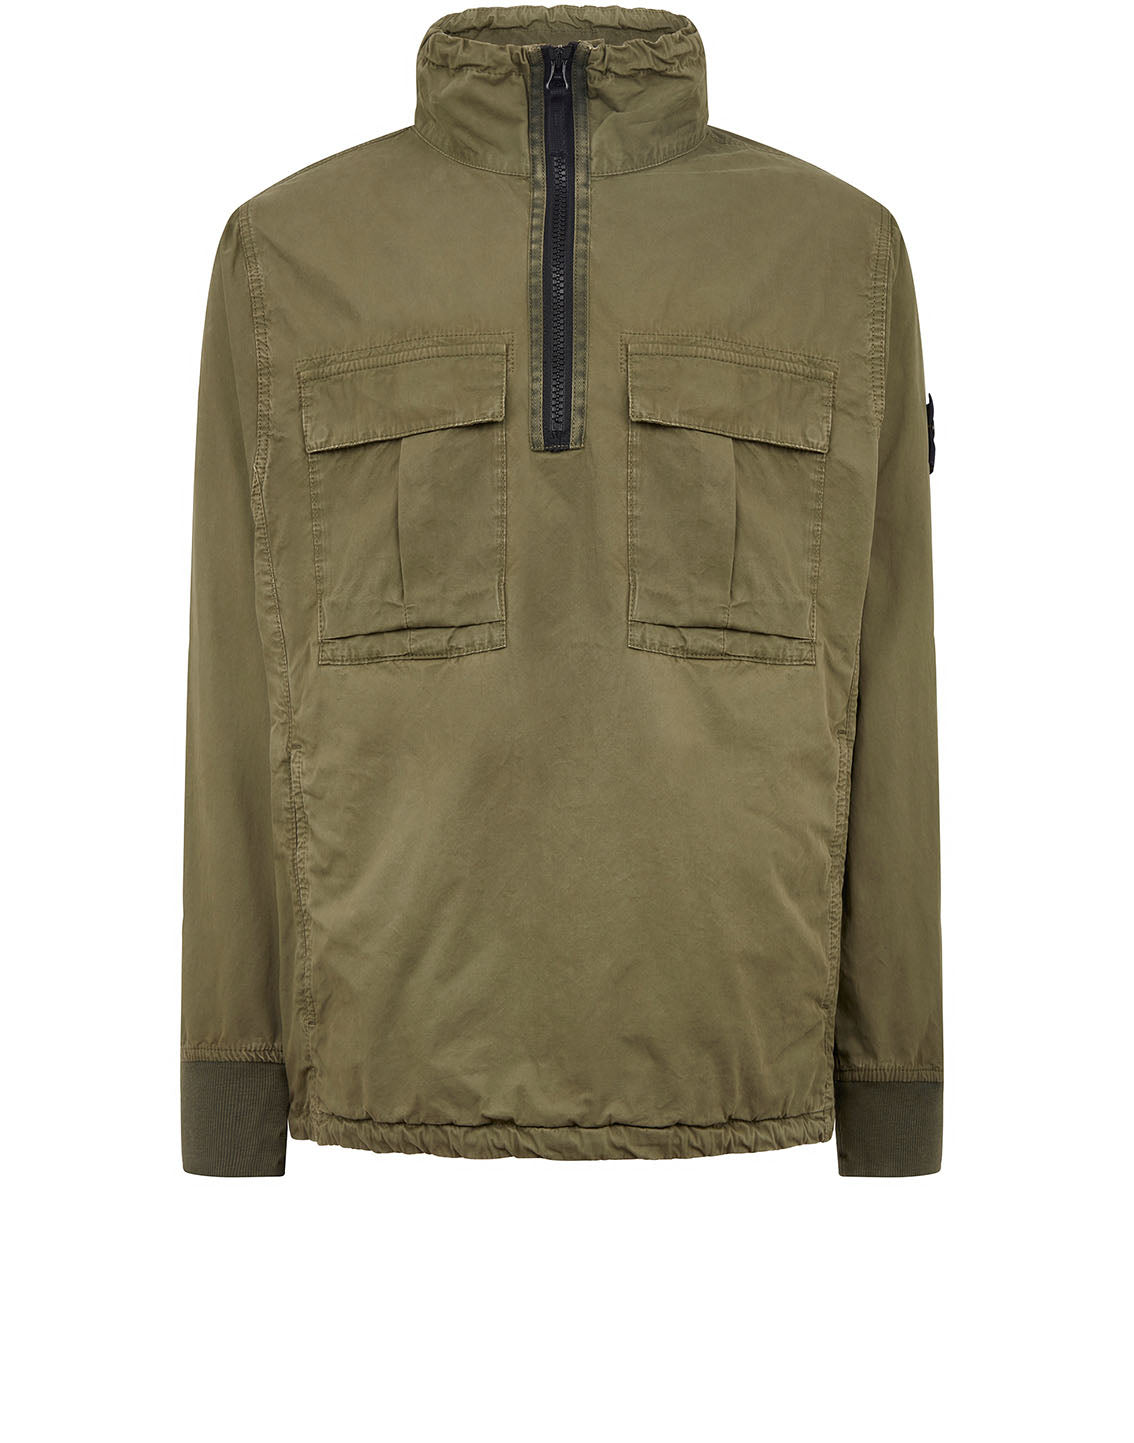 117WN 'OLD' DYE TREATMENT Overshirt in Olive